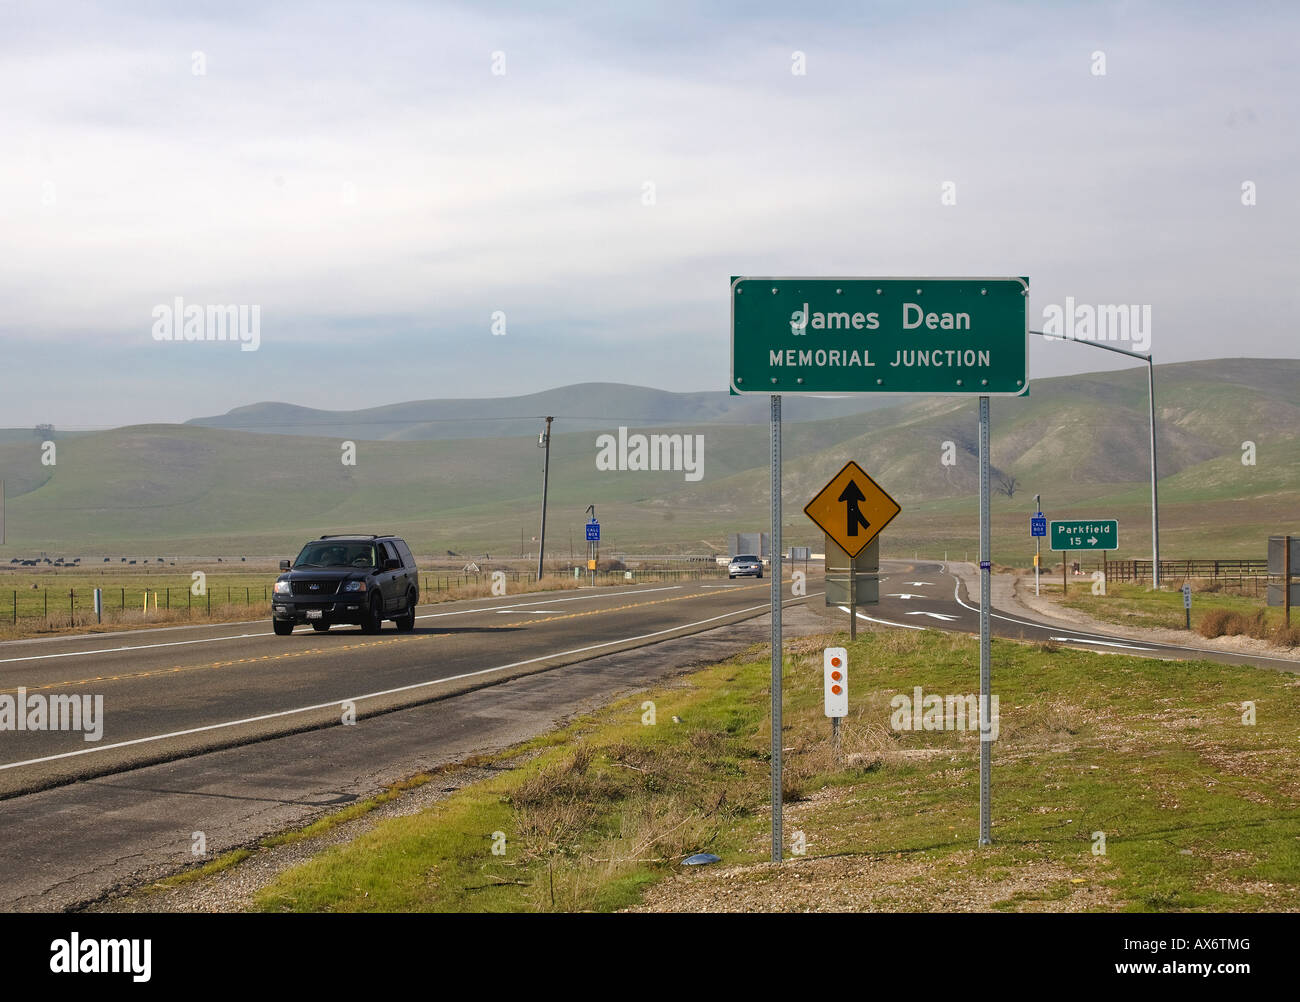 Site where the American actor James Dean was killed in a car crash in 1955. - Stock Image